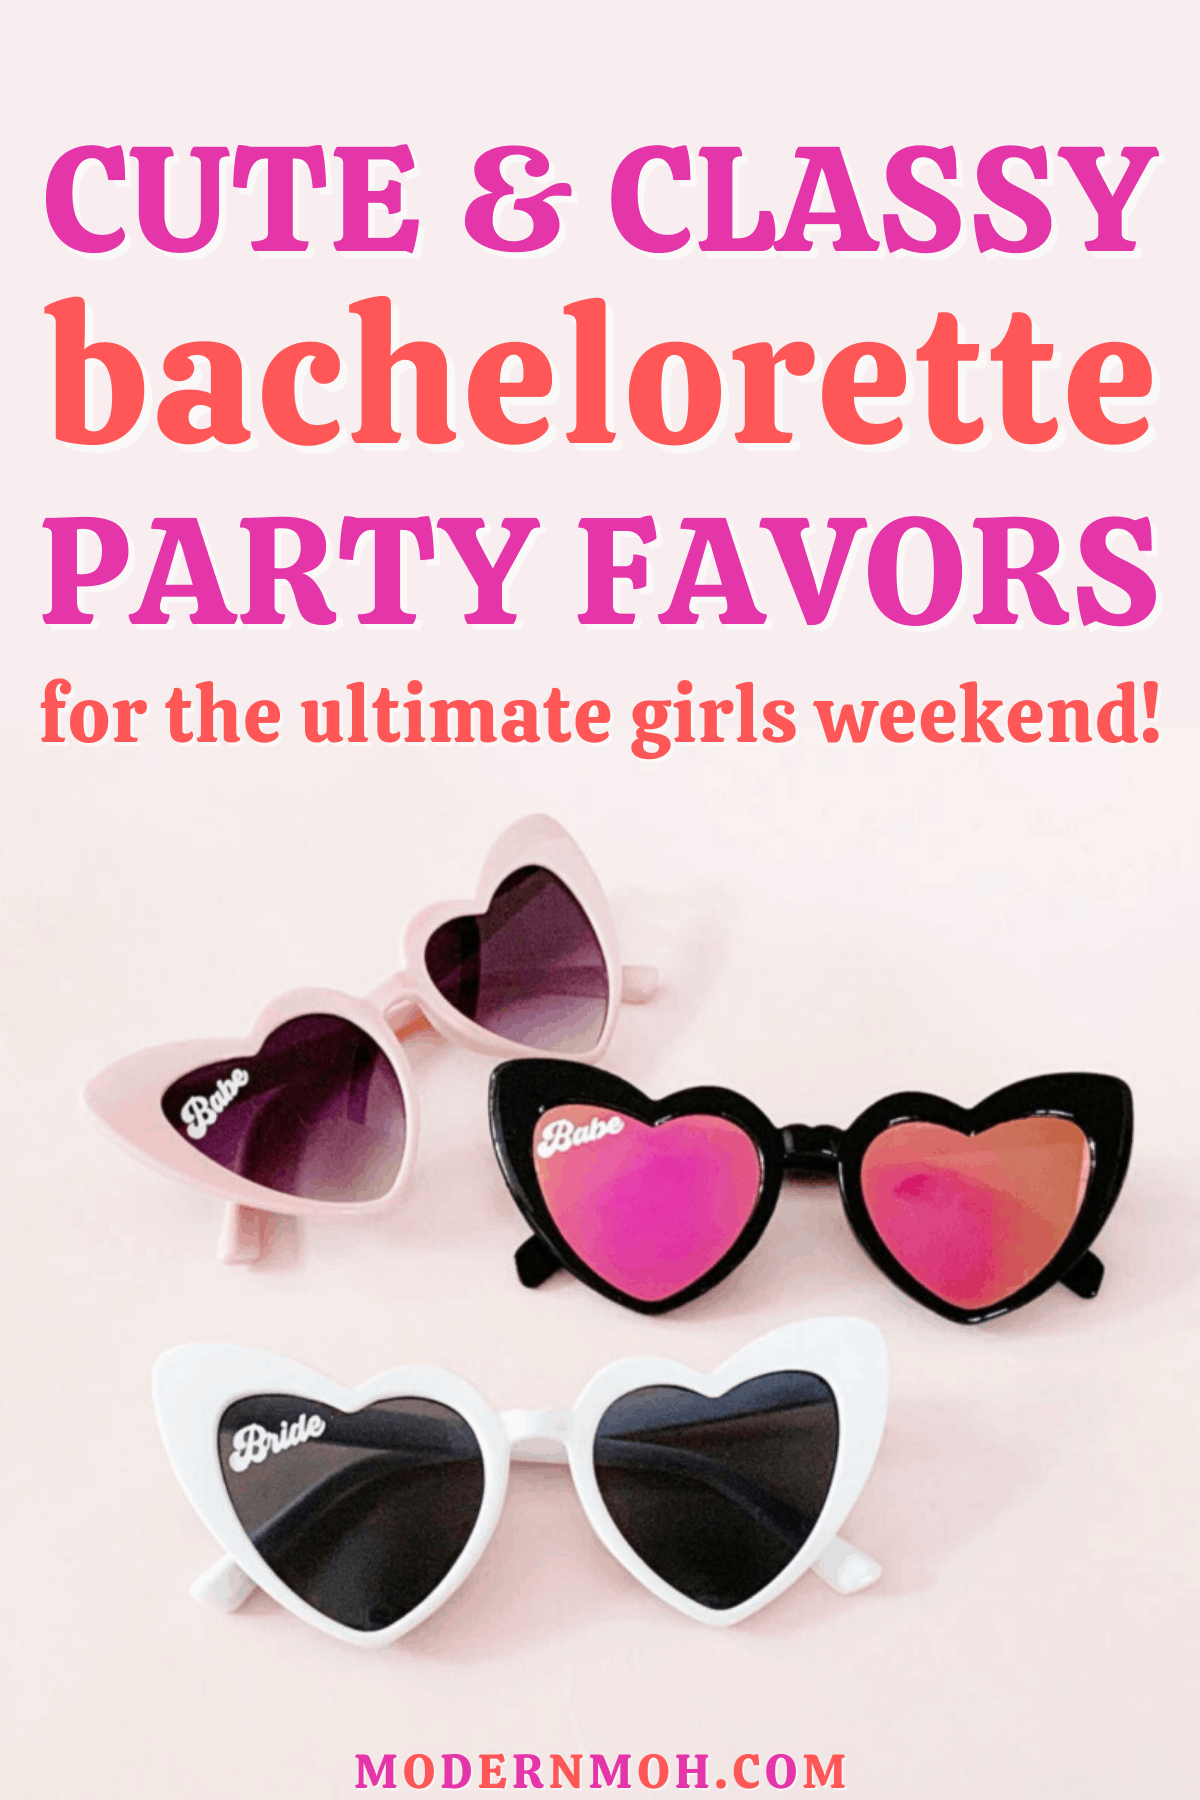 10 Bachelorette Party Favors for Your Girls Weekend in